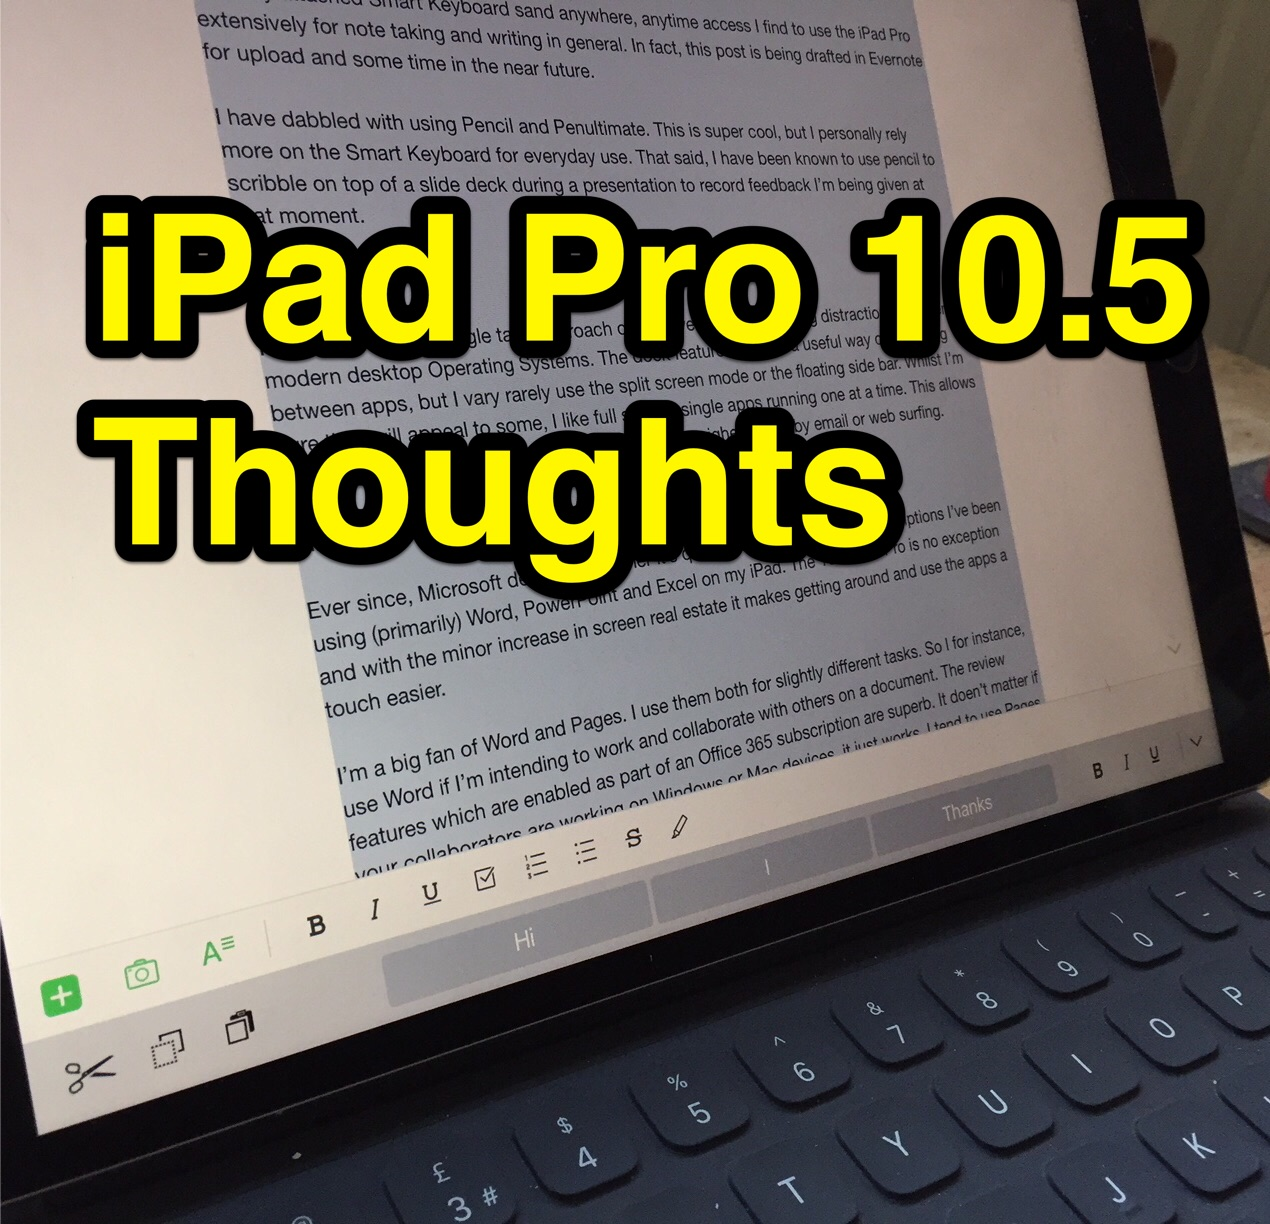 iPad Pro 10.5 Thoughts